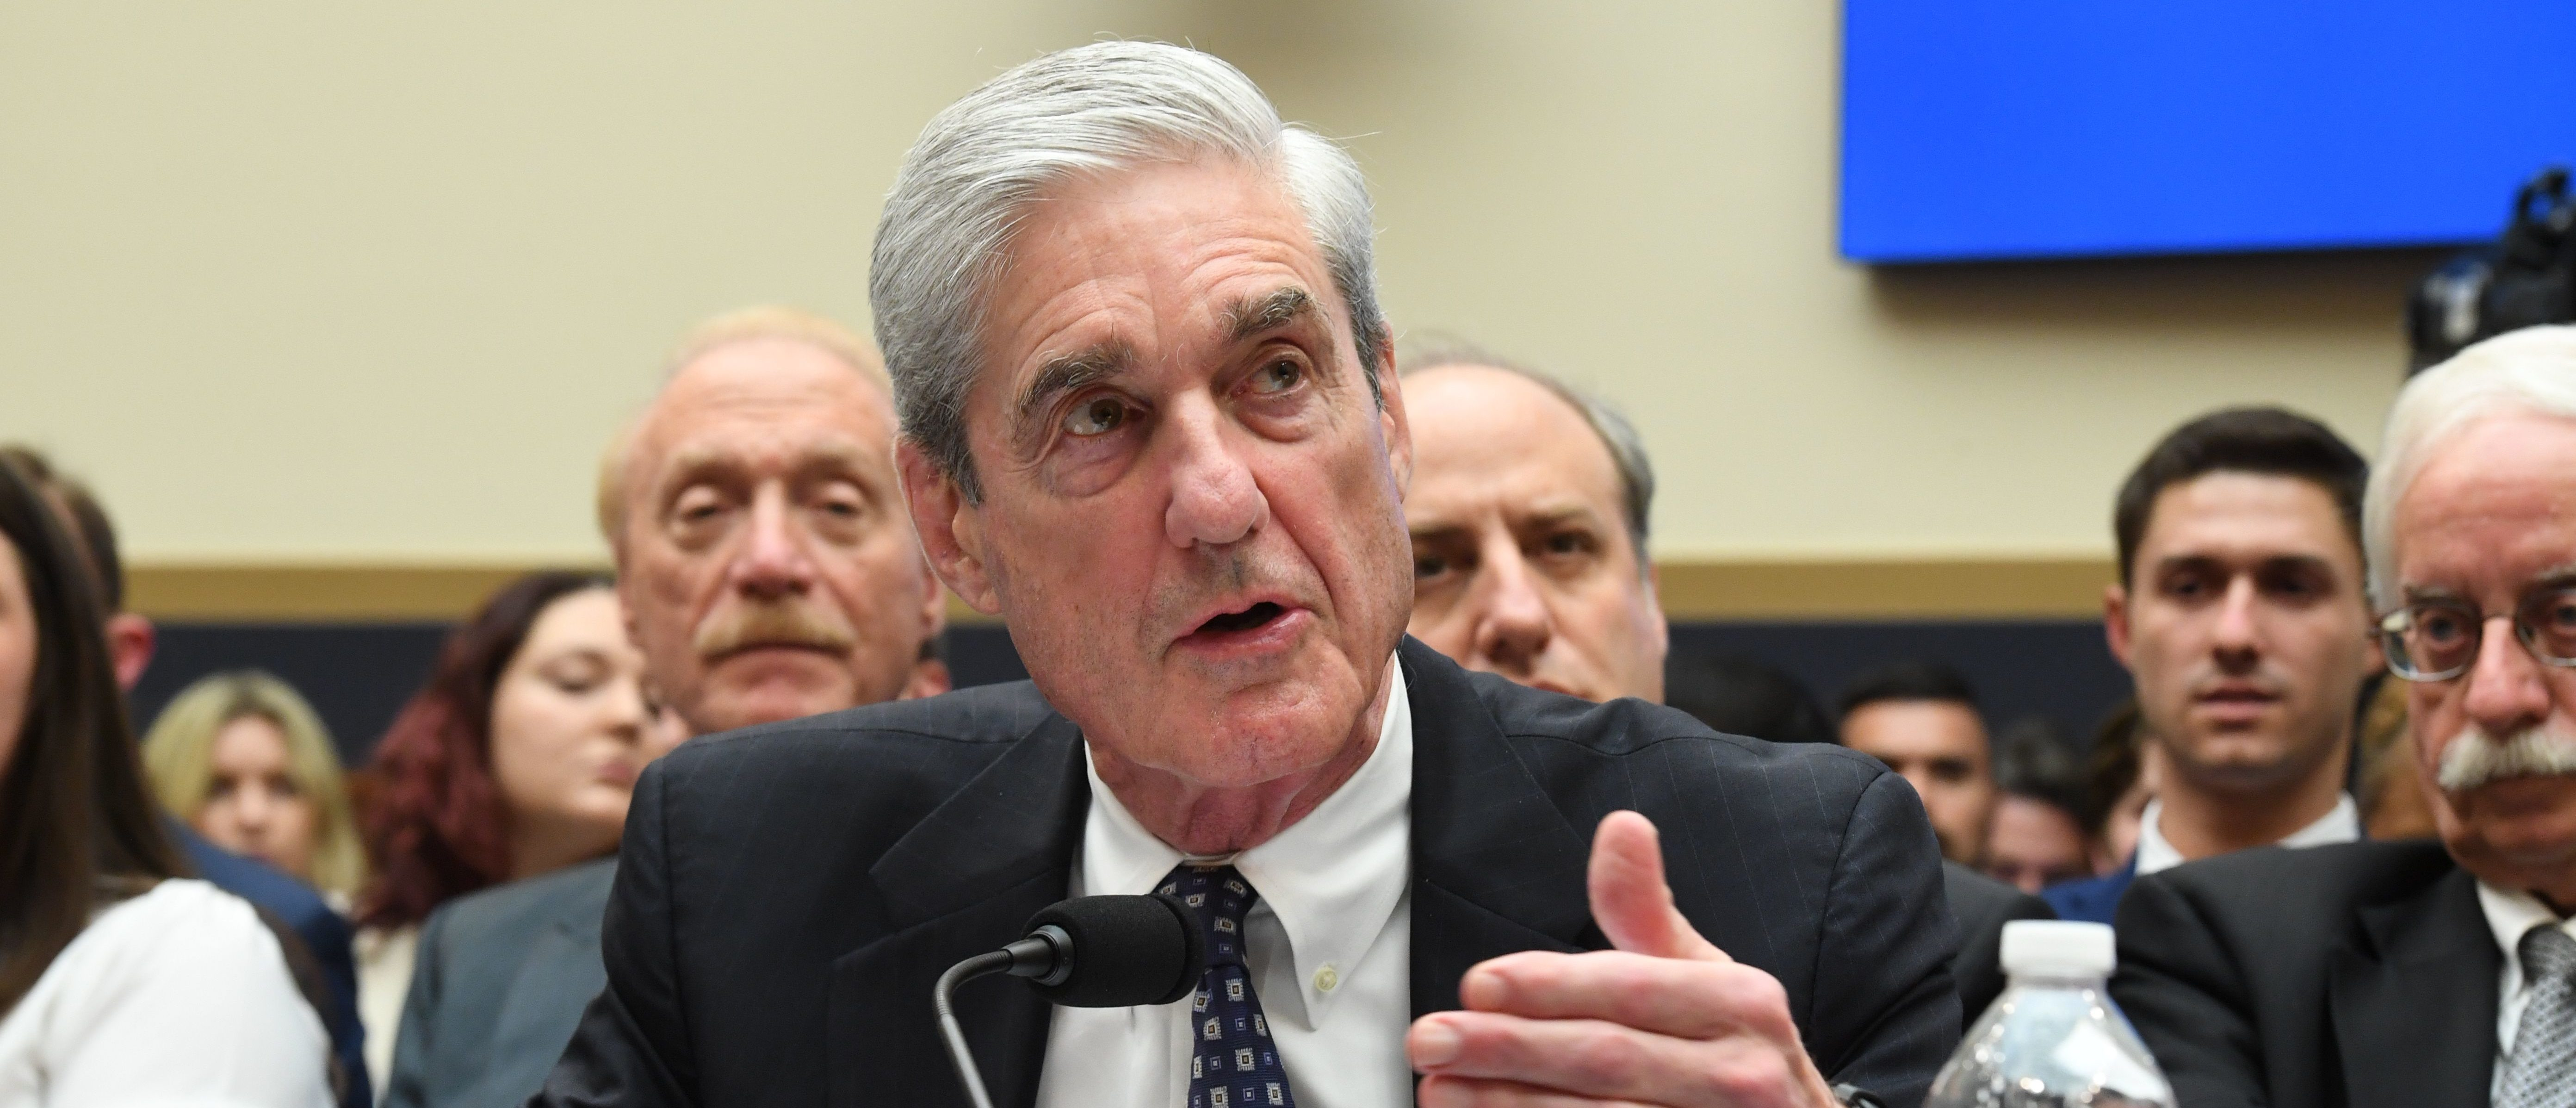 Former Special Counsel Robert Mueller testifies before the House Select Committee on Intelligence hearing on July 24, 2019. (Jim Watson/AFP/Getty Images)